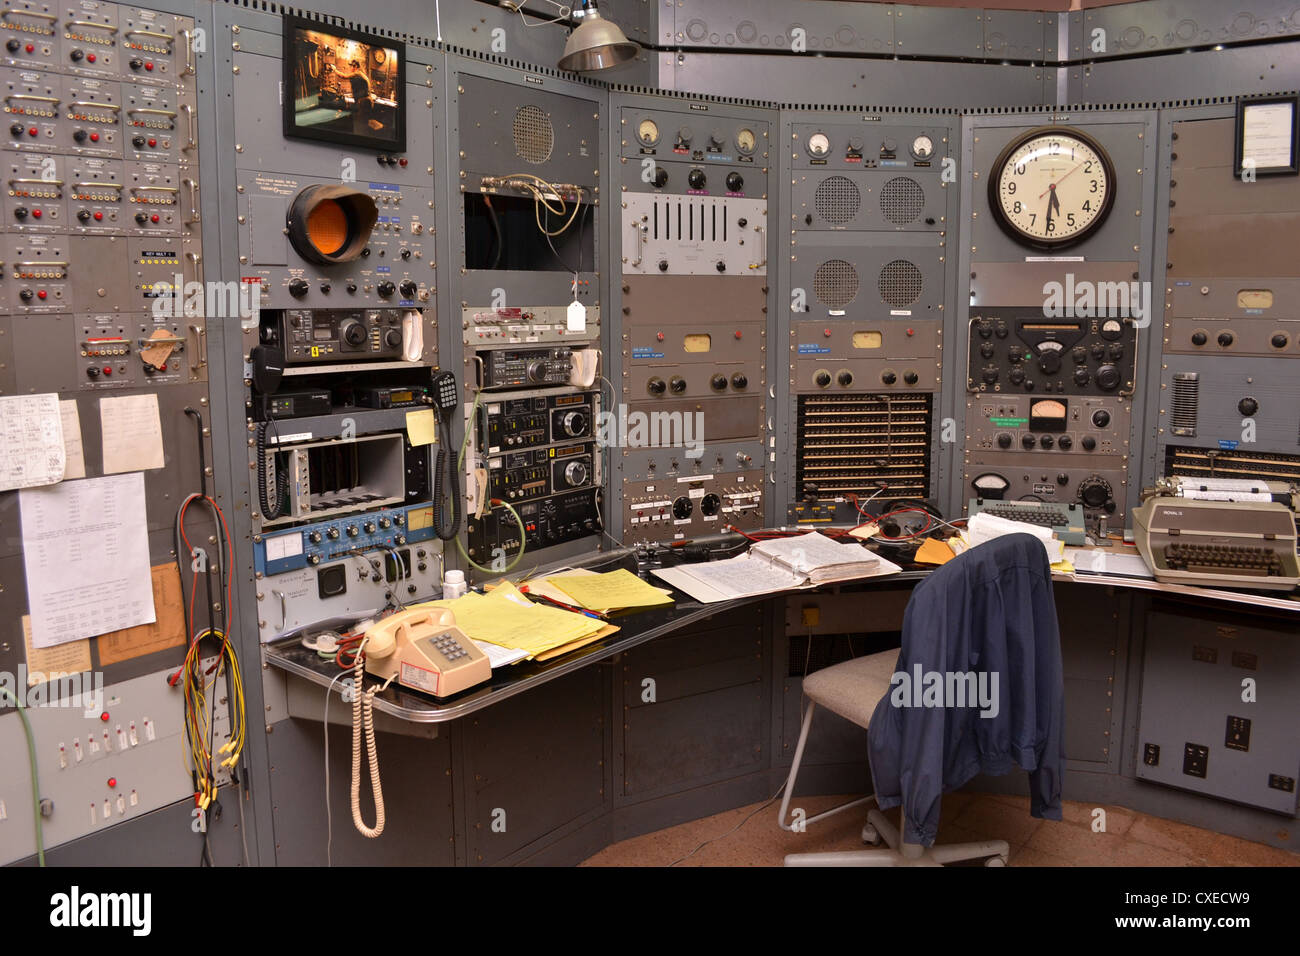 Control room at KPH/K6KPH radio at Bolinas California. KPH was a public coast radio station on the West Coast of - Stock Image